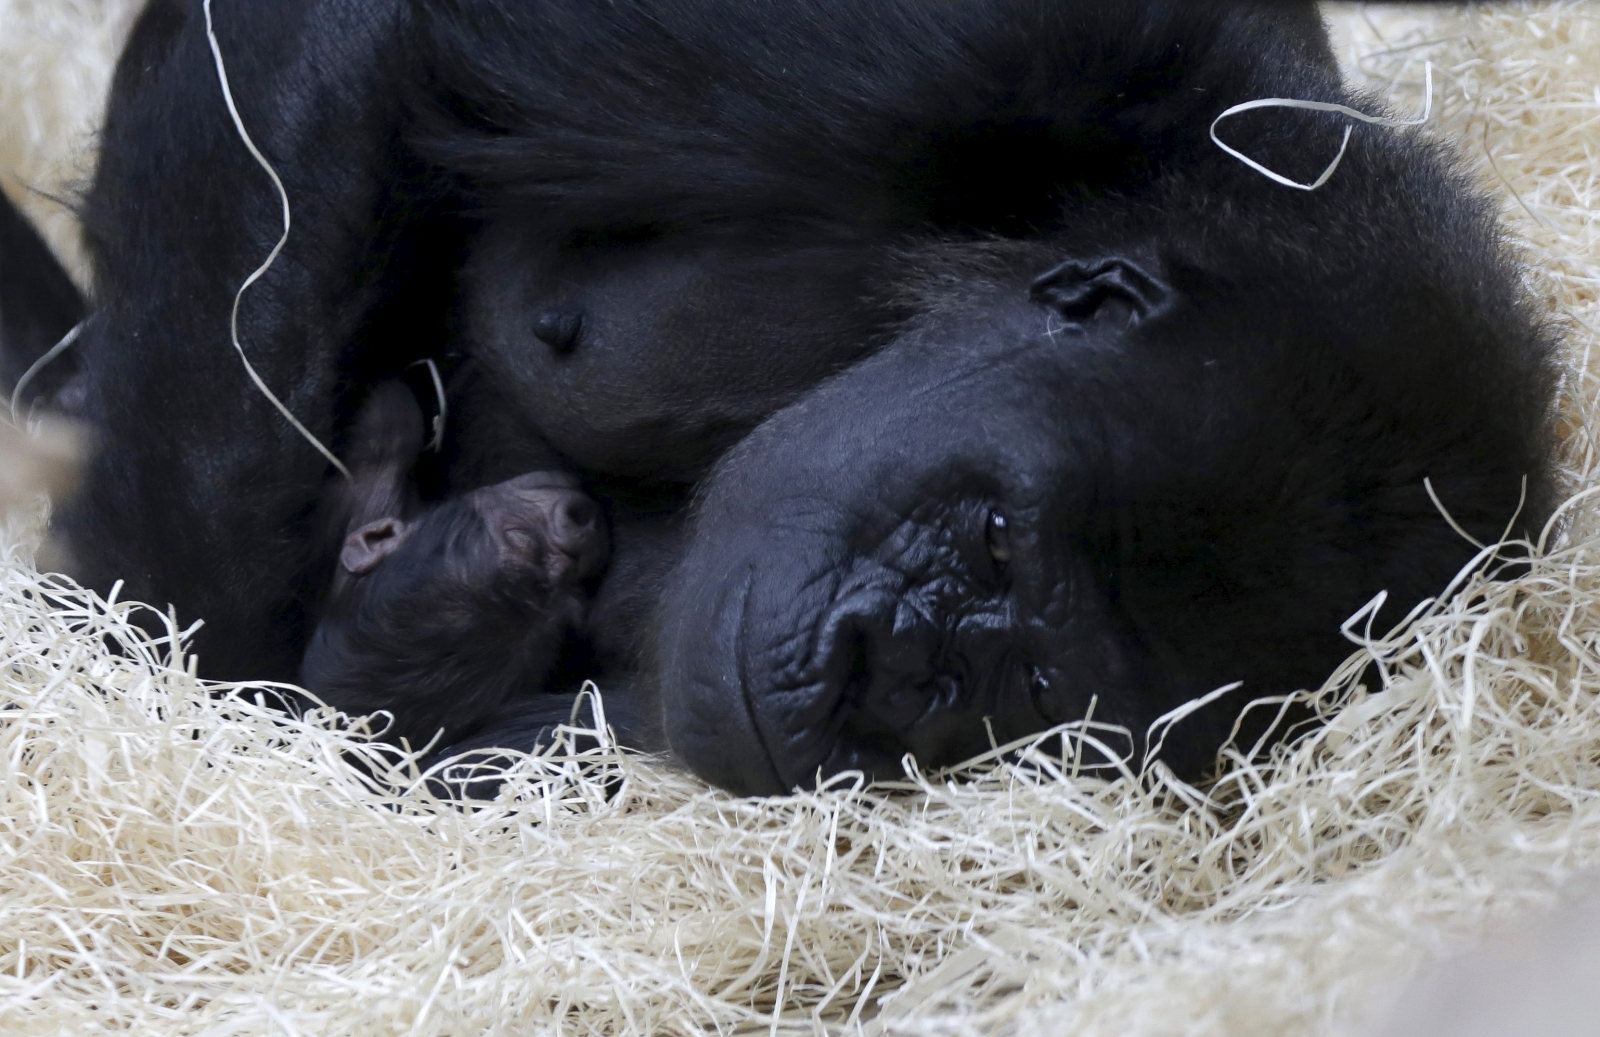 Happy birthday to Colo: Oldest gorilla in US turns 60